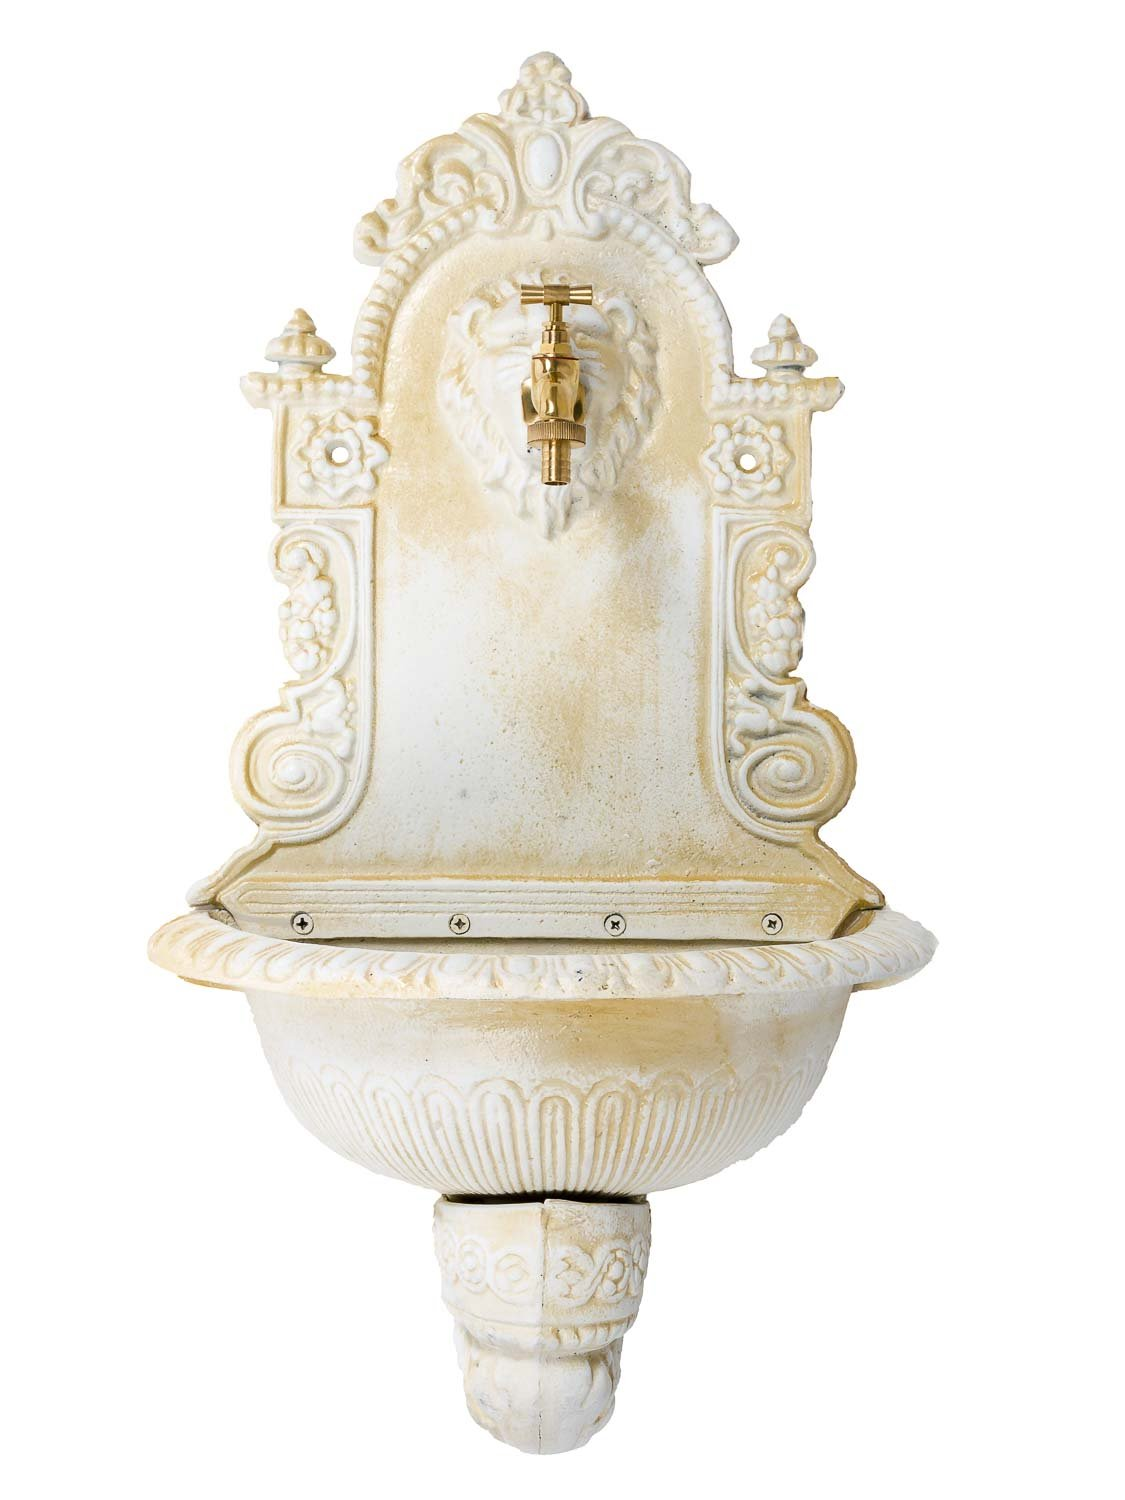 Fountain with basin antique style iron antique white 2'6  (76cm)